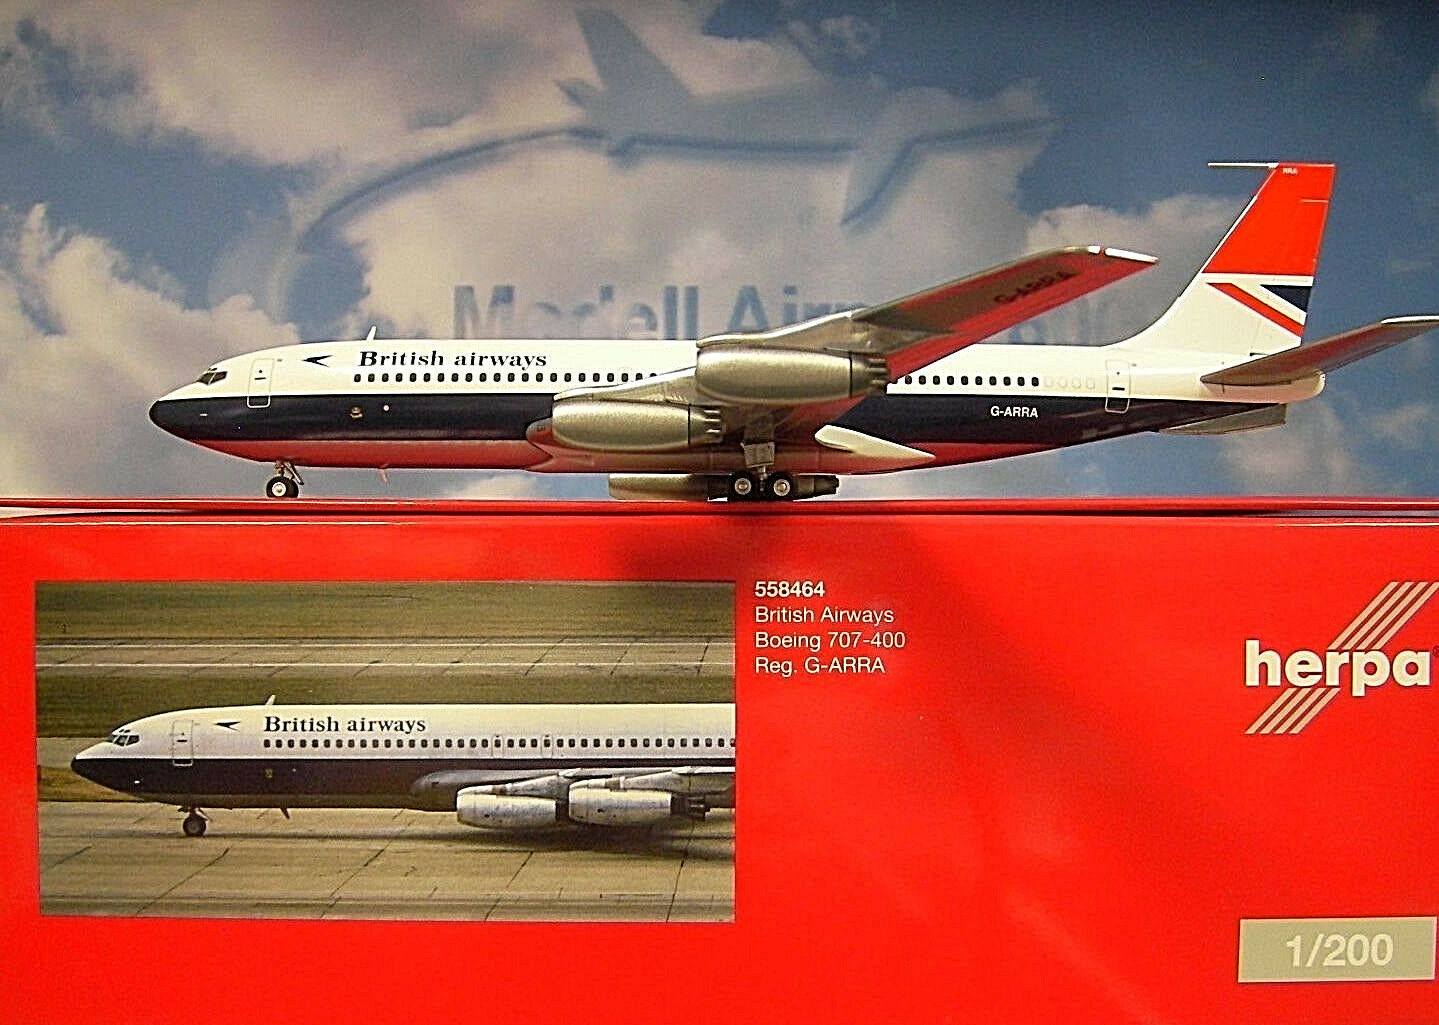 Herpa ALI 1:200 Boeing 707-400 707-400 707-400 British Airways g-arra 558464 f40e17